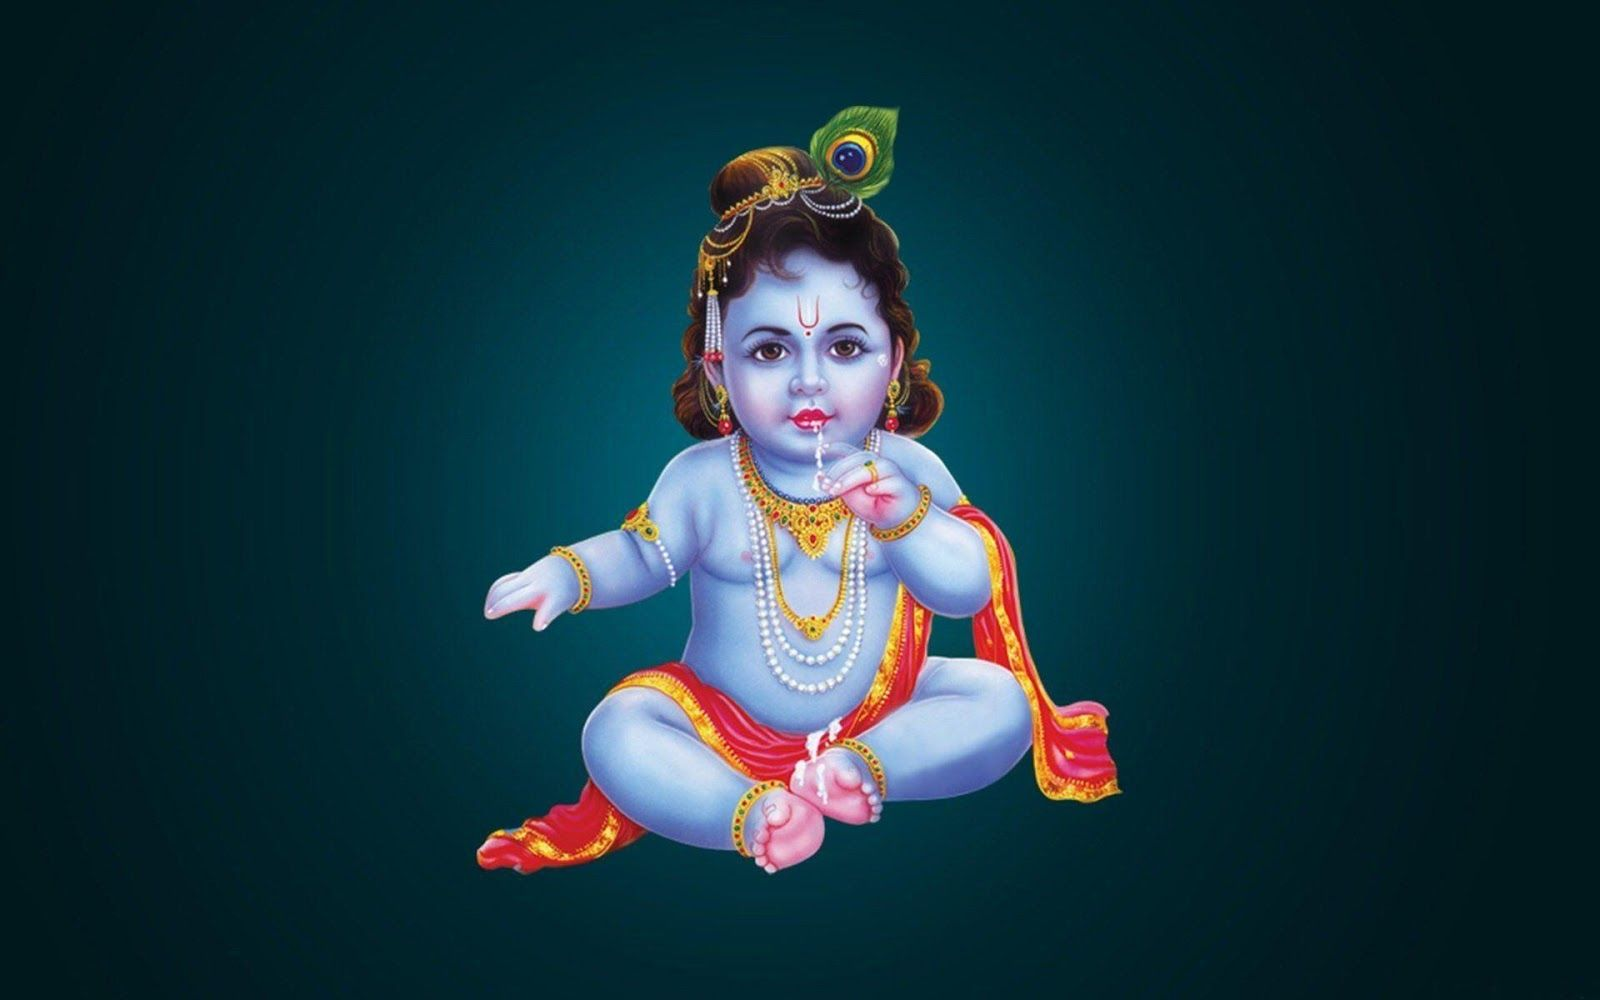 12 Best Krishna Hd Mobile And Laptop Wallpaper Free Download Best Devotional Full Hd Wallpapers In High Quali Lord Krishna Images Lord Krishna Krishna Images